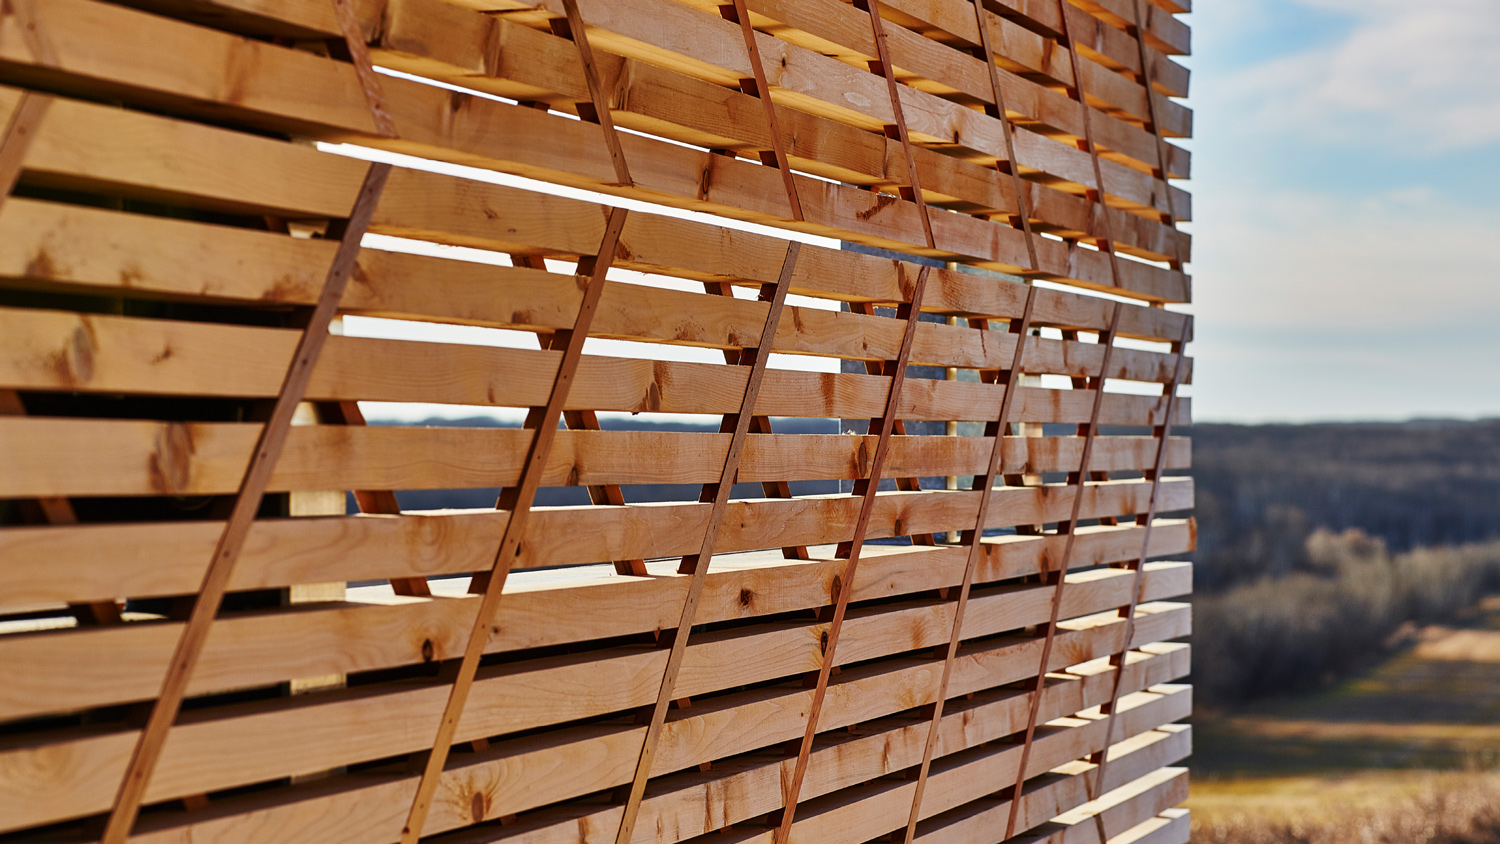 Wooden slats with battens at 45° not only provide structure, but also reference the ceinture fléchée, the traditional sash of the Métis Nation.